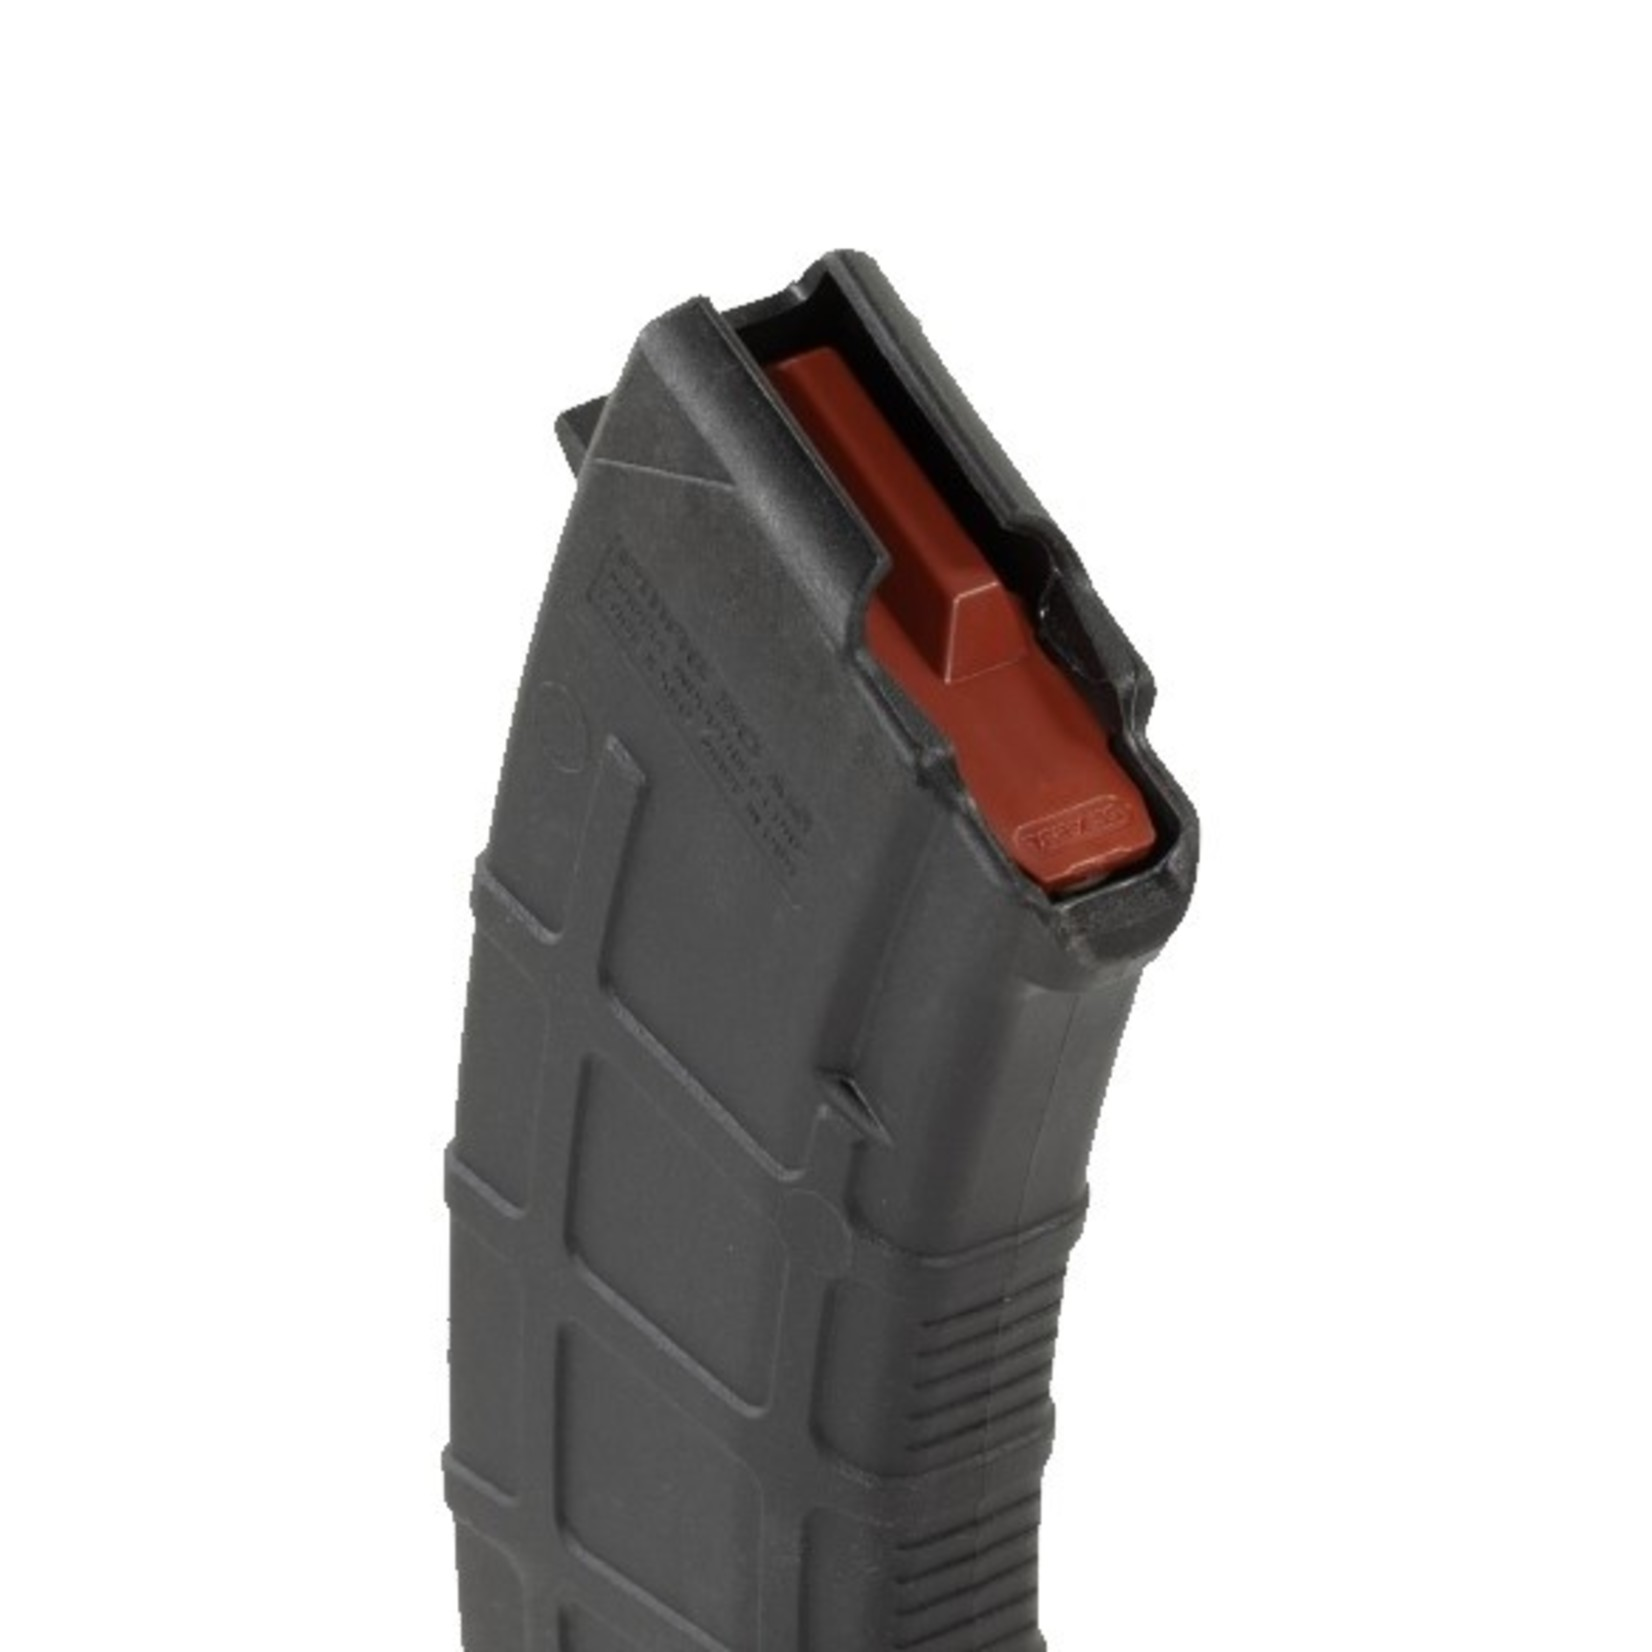 MAGPUL PMAG 30 AK/AKM MOE (PINNED TO 5)